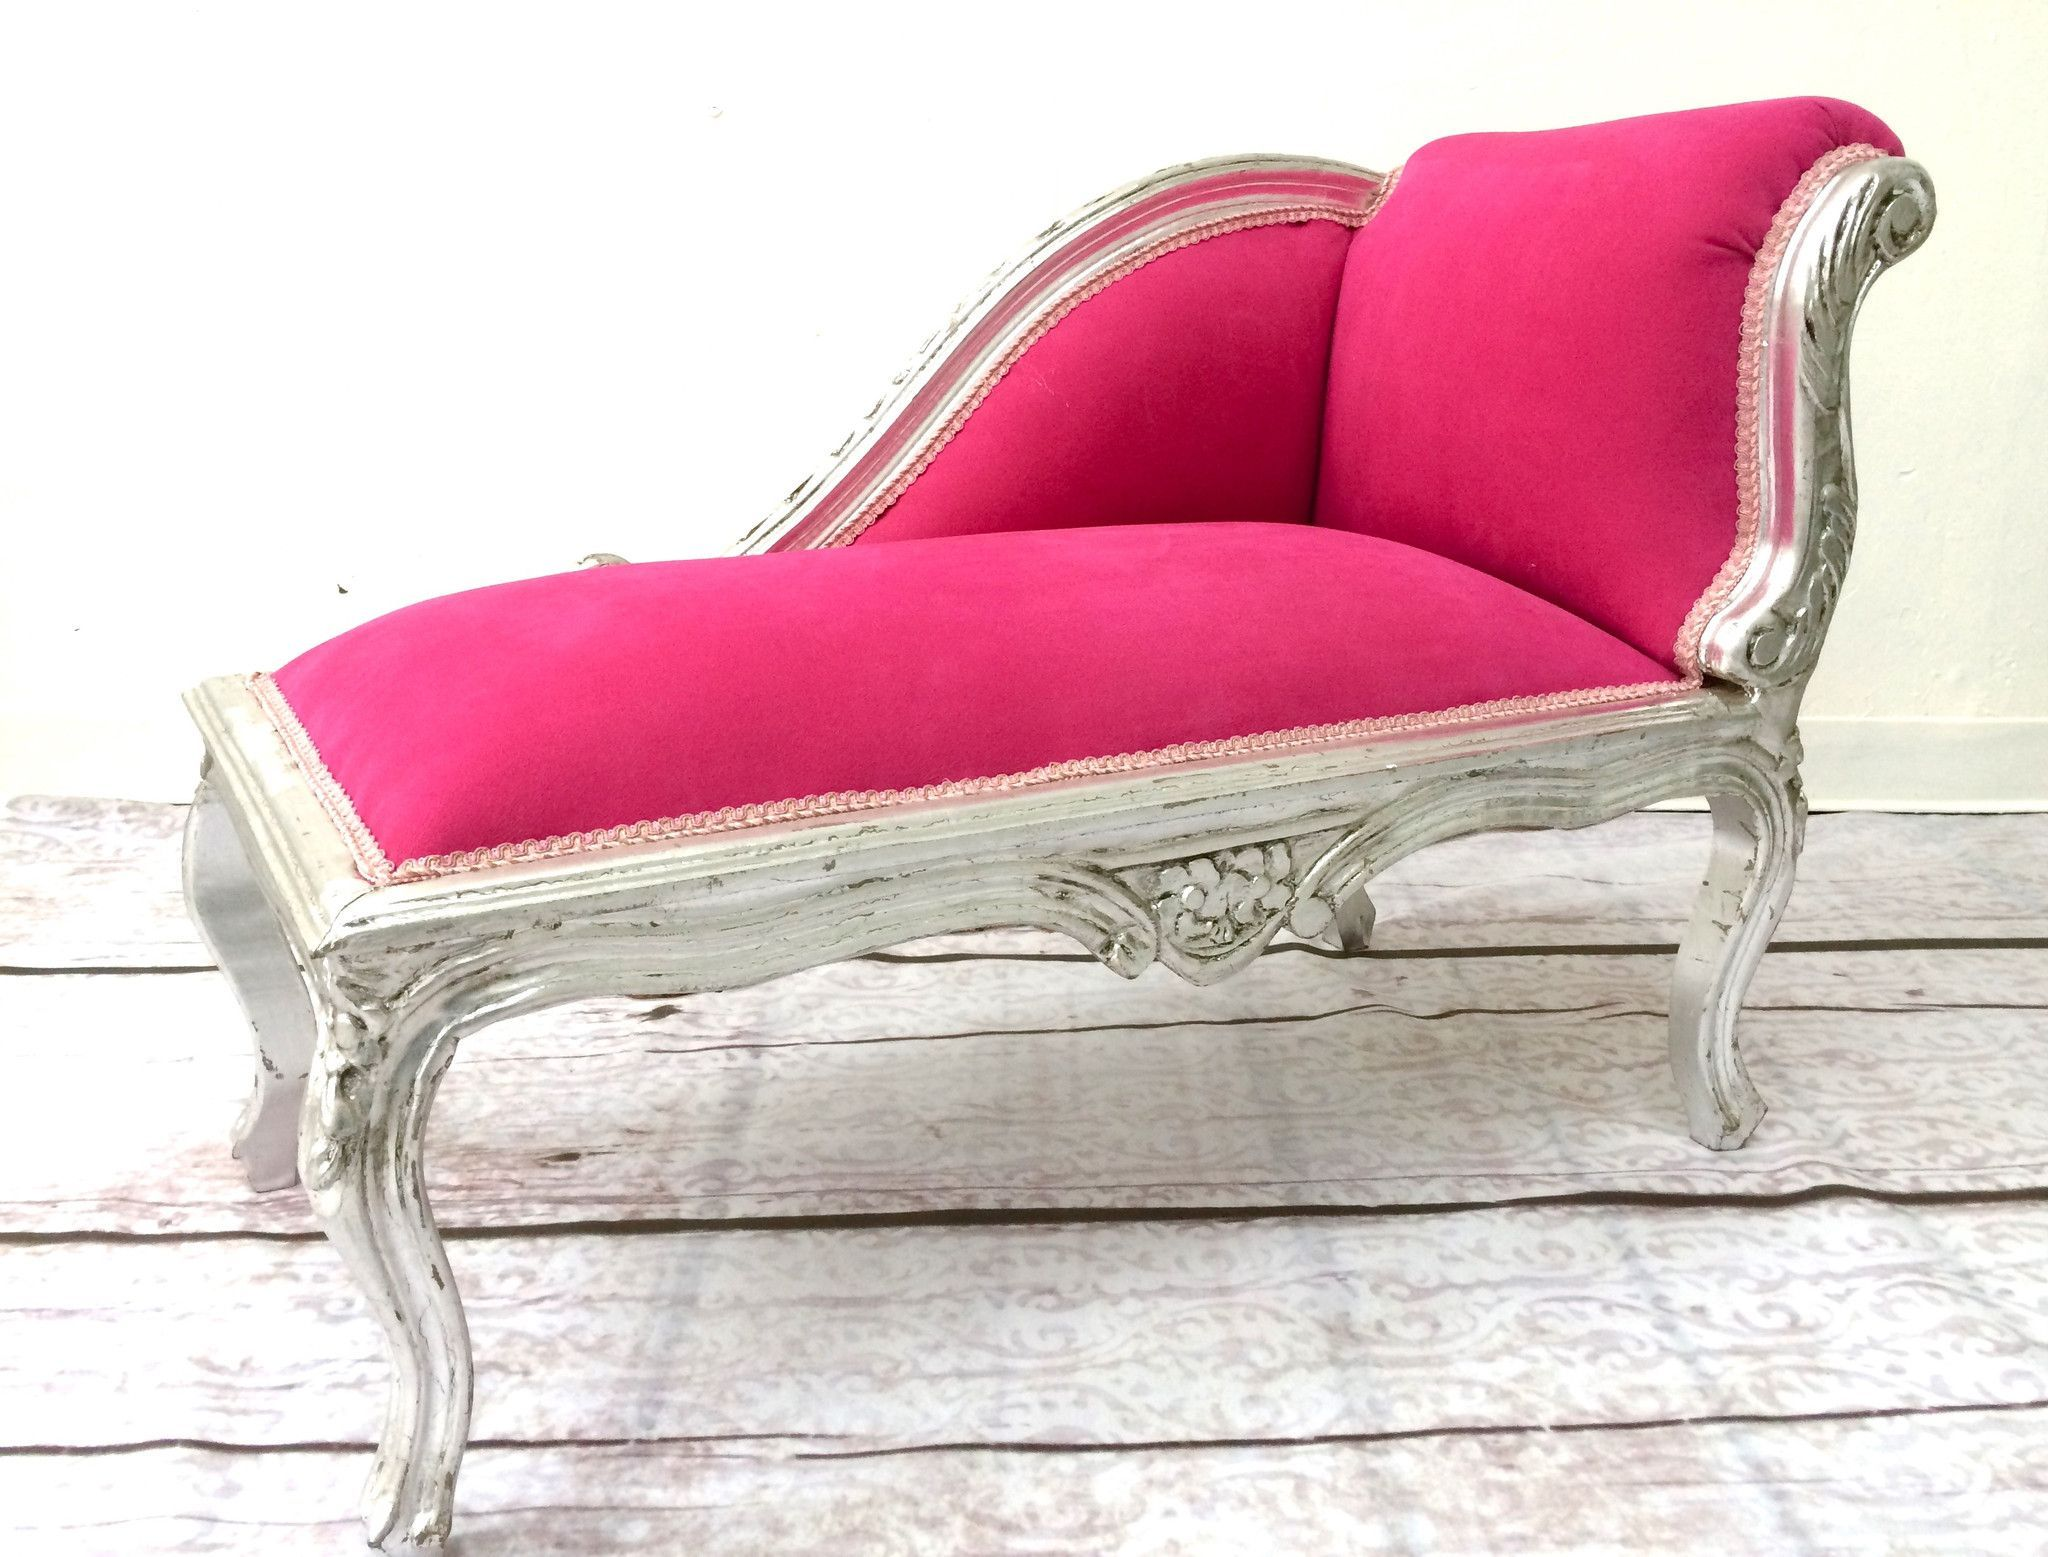 silver pink baroque chaise lounge  home  pinterest  chaise  - silver pink baroque chaise lounge